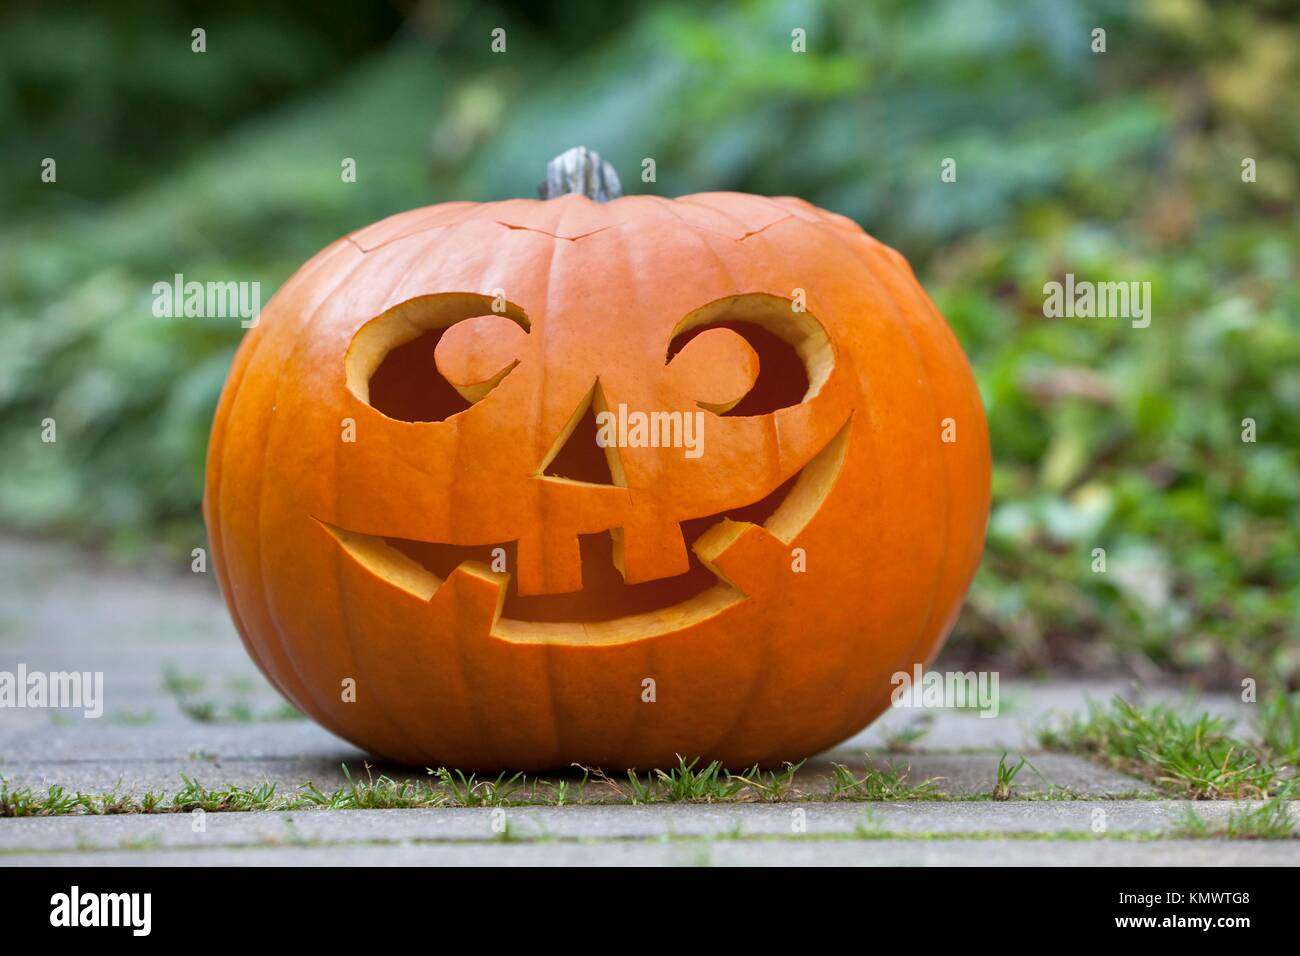 Halloween Pumkin In The Garden Stock Photo Alamy It's native to north america and particularly popular around thanksgiving and halloween (1). https www alamy com stock image halloween pumkin in the garden 167754504 html